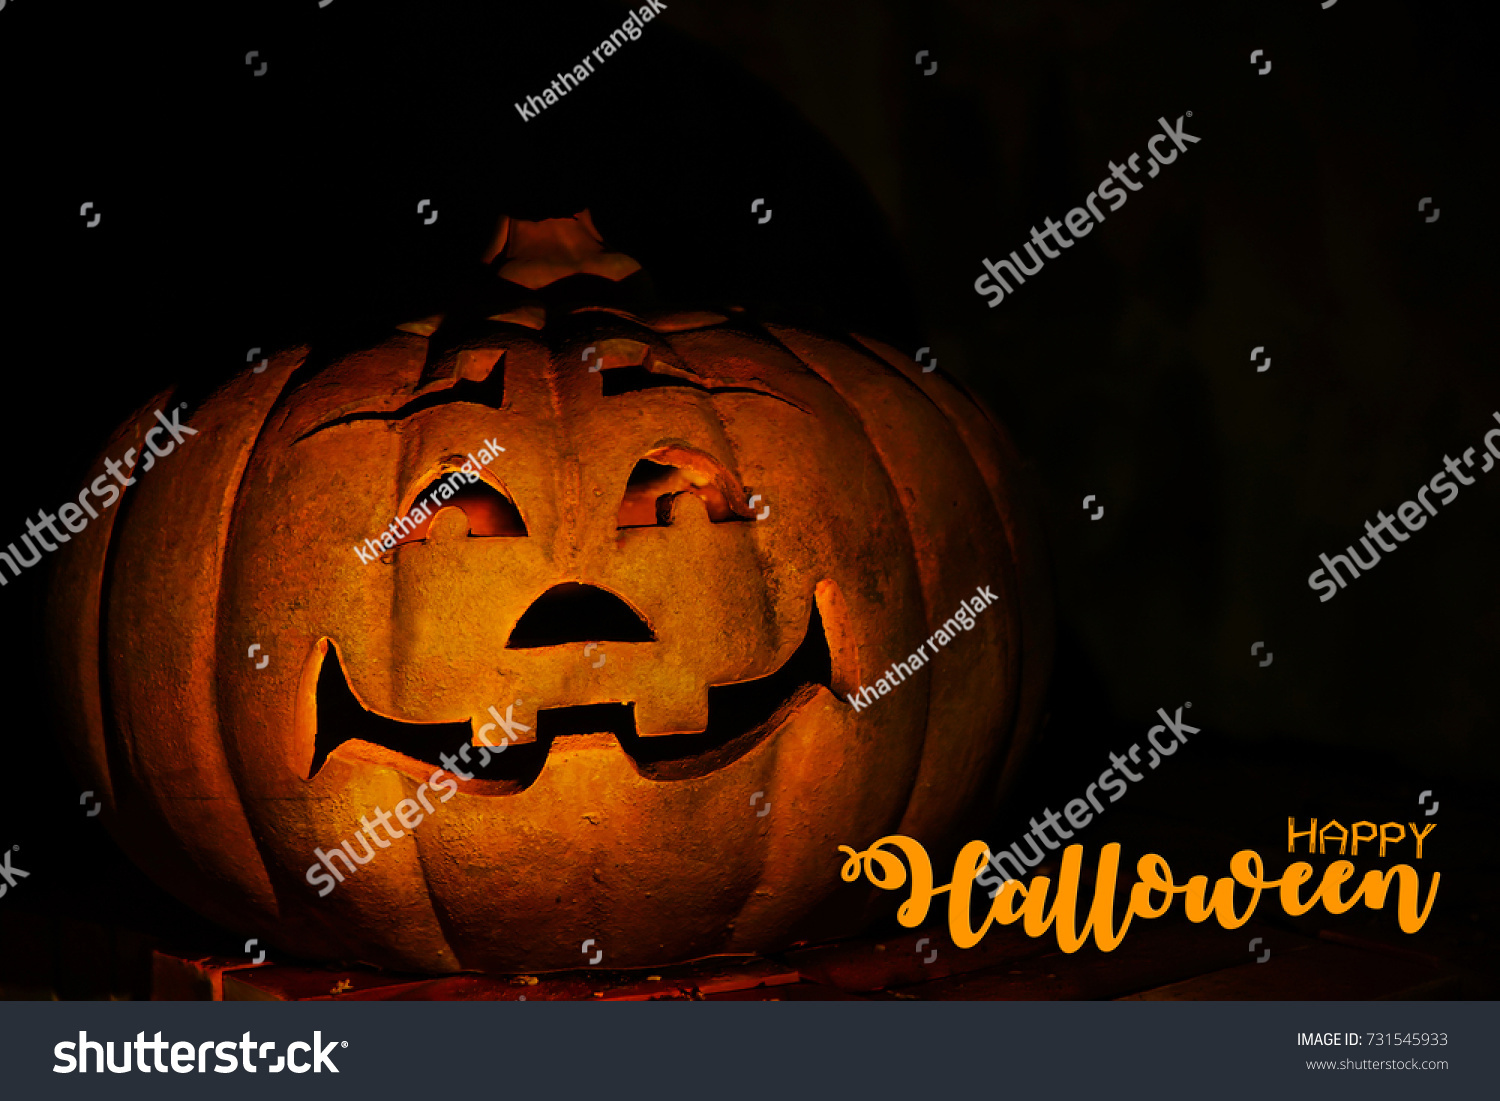 Happy Halloween Scary Night Backgrounds Pumpkin Stock Photo ...